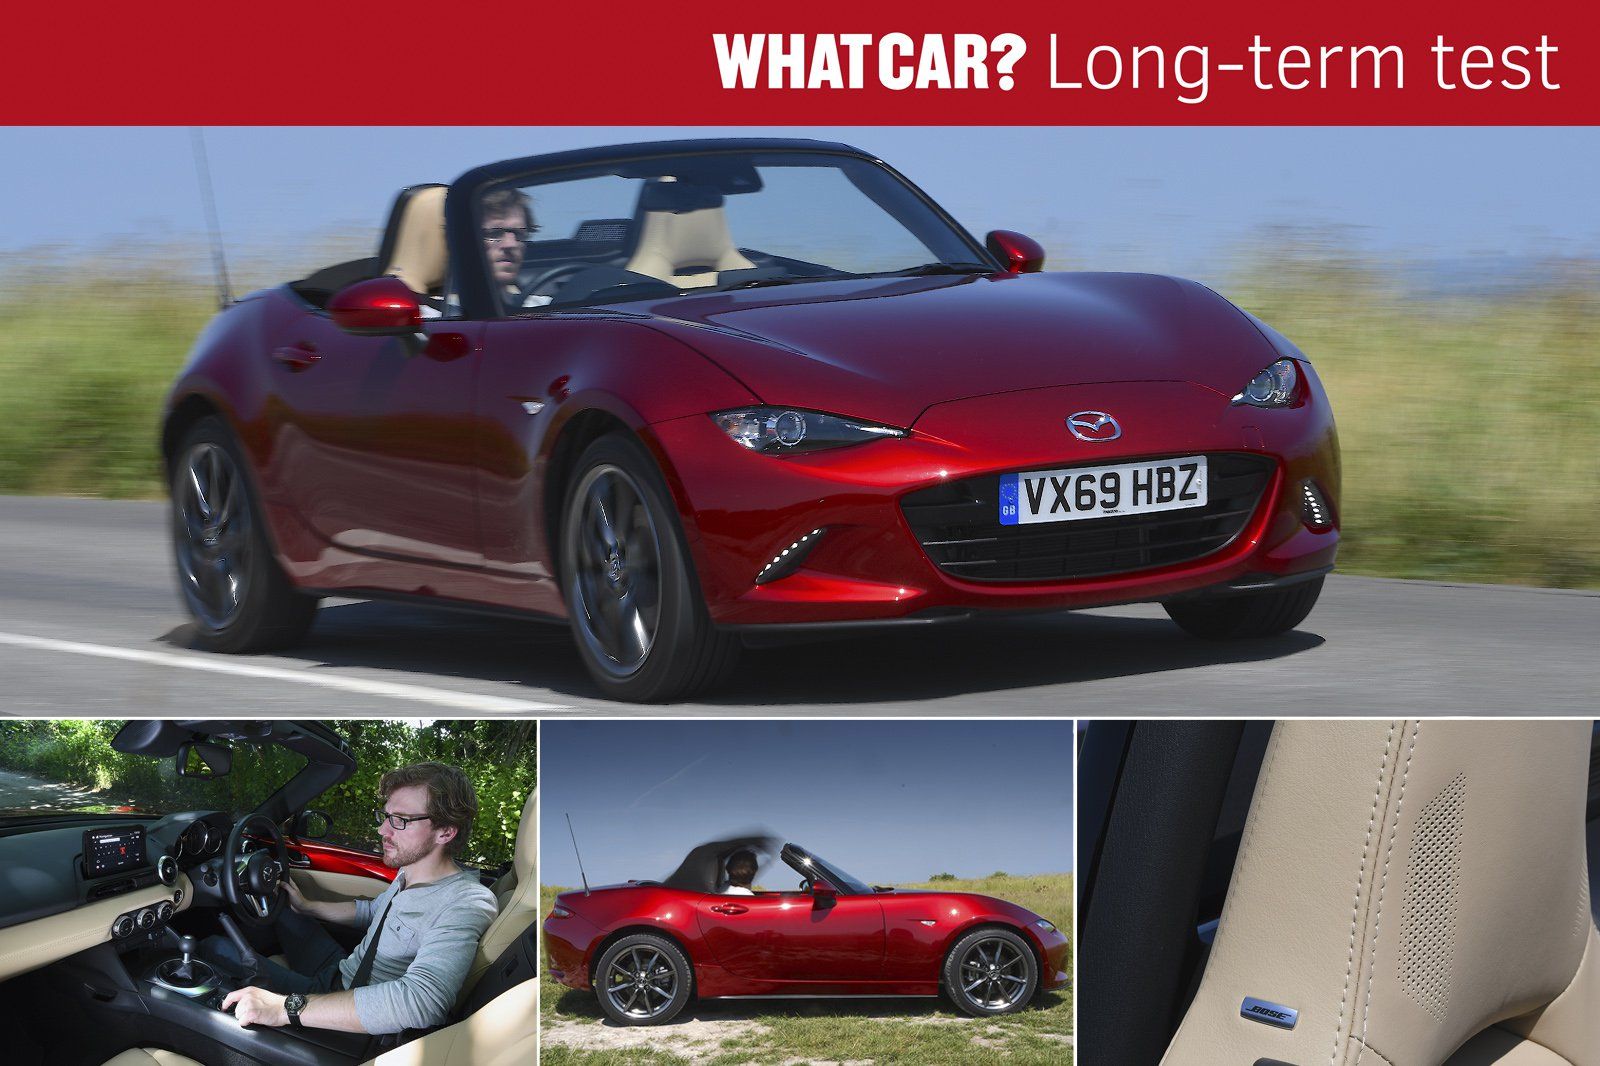 Used Mazda MX-5 long-term test review main image